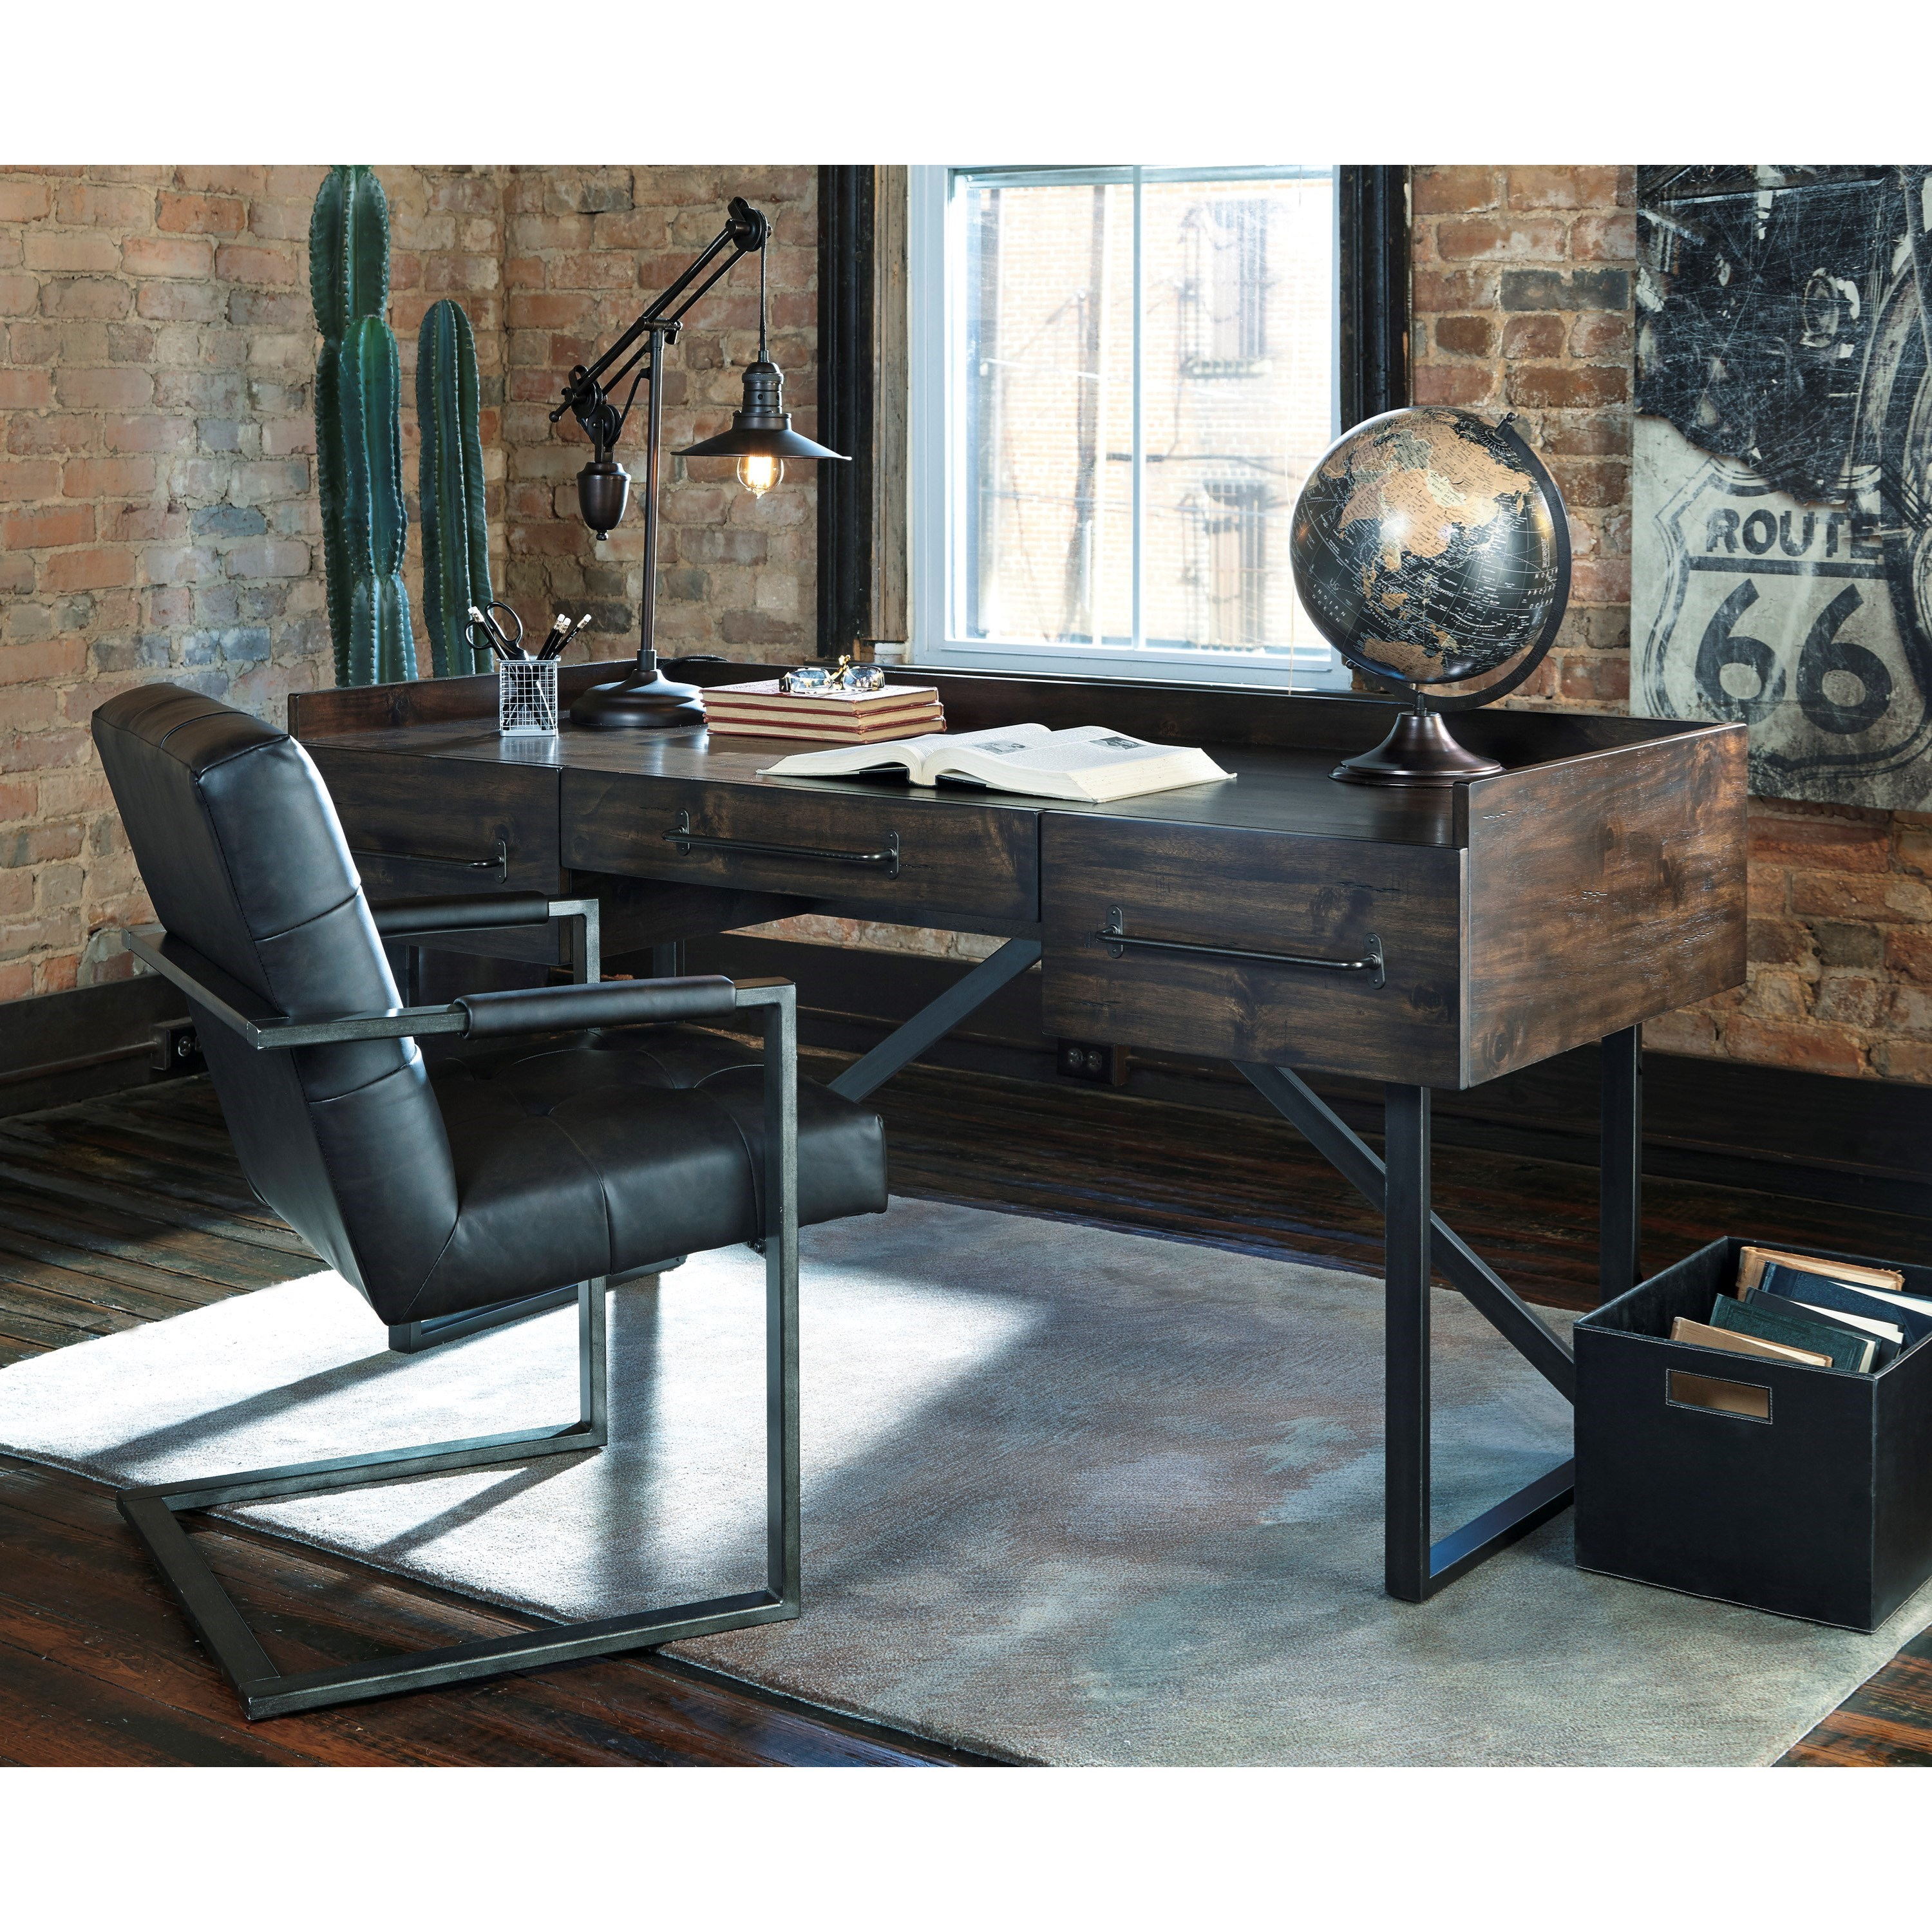 Modern Industrial Chair Modern Rustic Industrial Home Office Desk With Steel Base